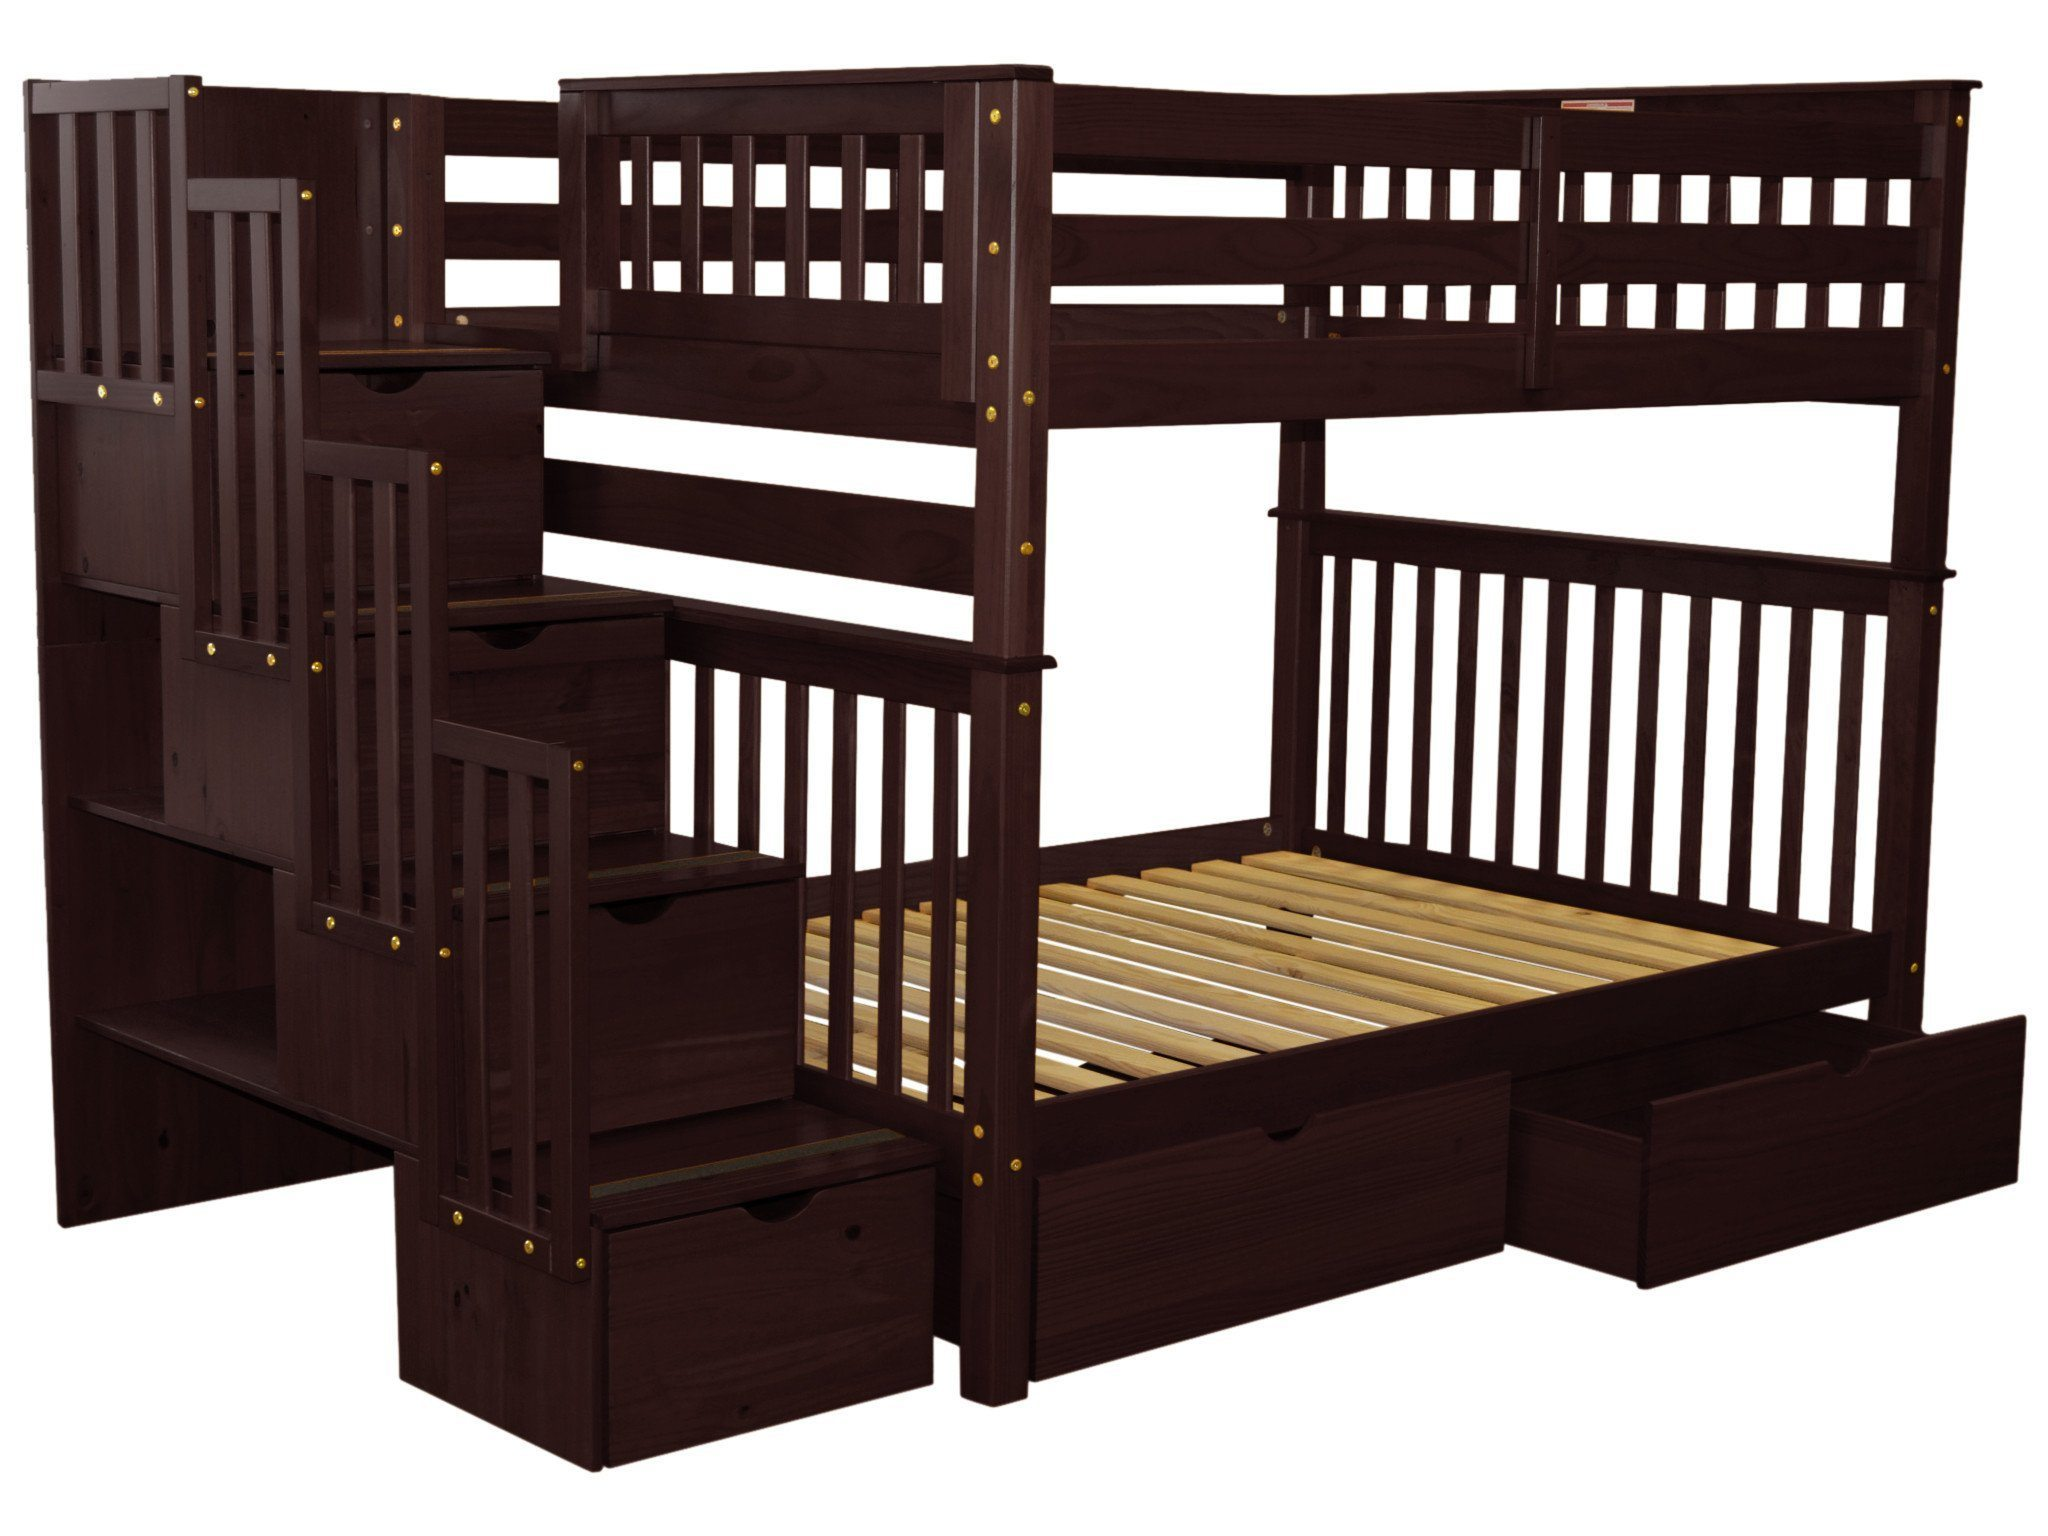 Merveilleux Bedz King Stairway Bunk Beds Full Over Full With 4 Drawers In The Steps And  2